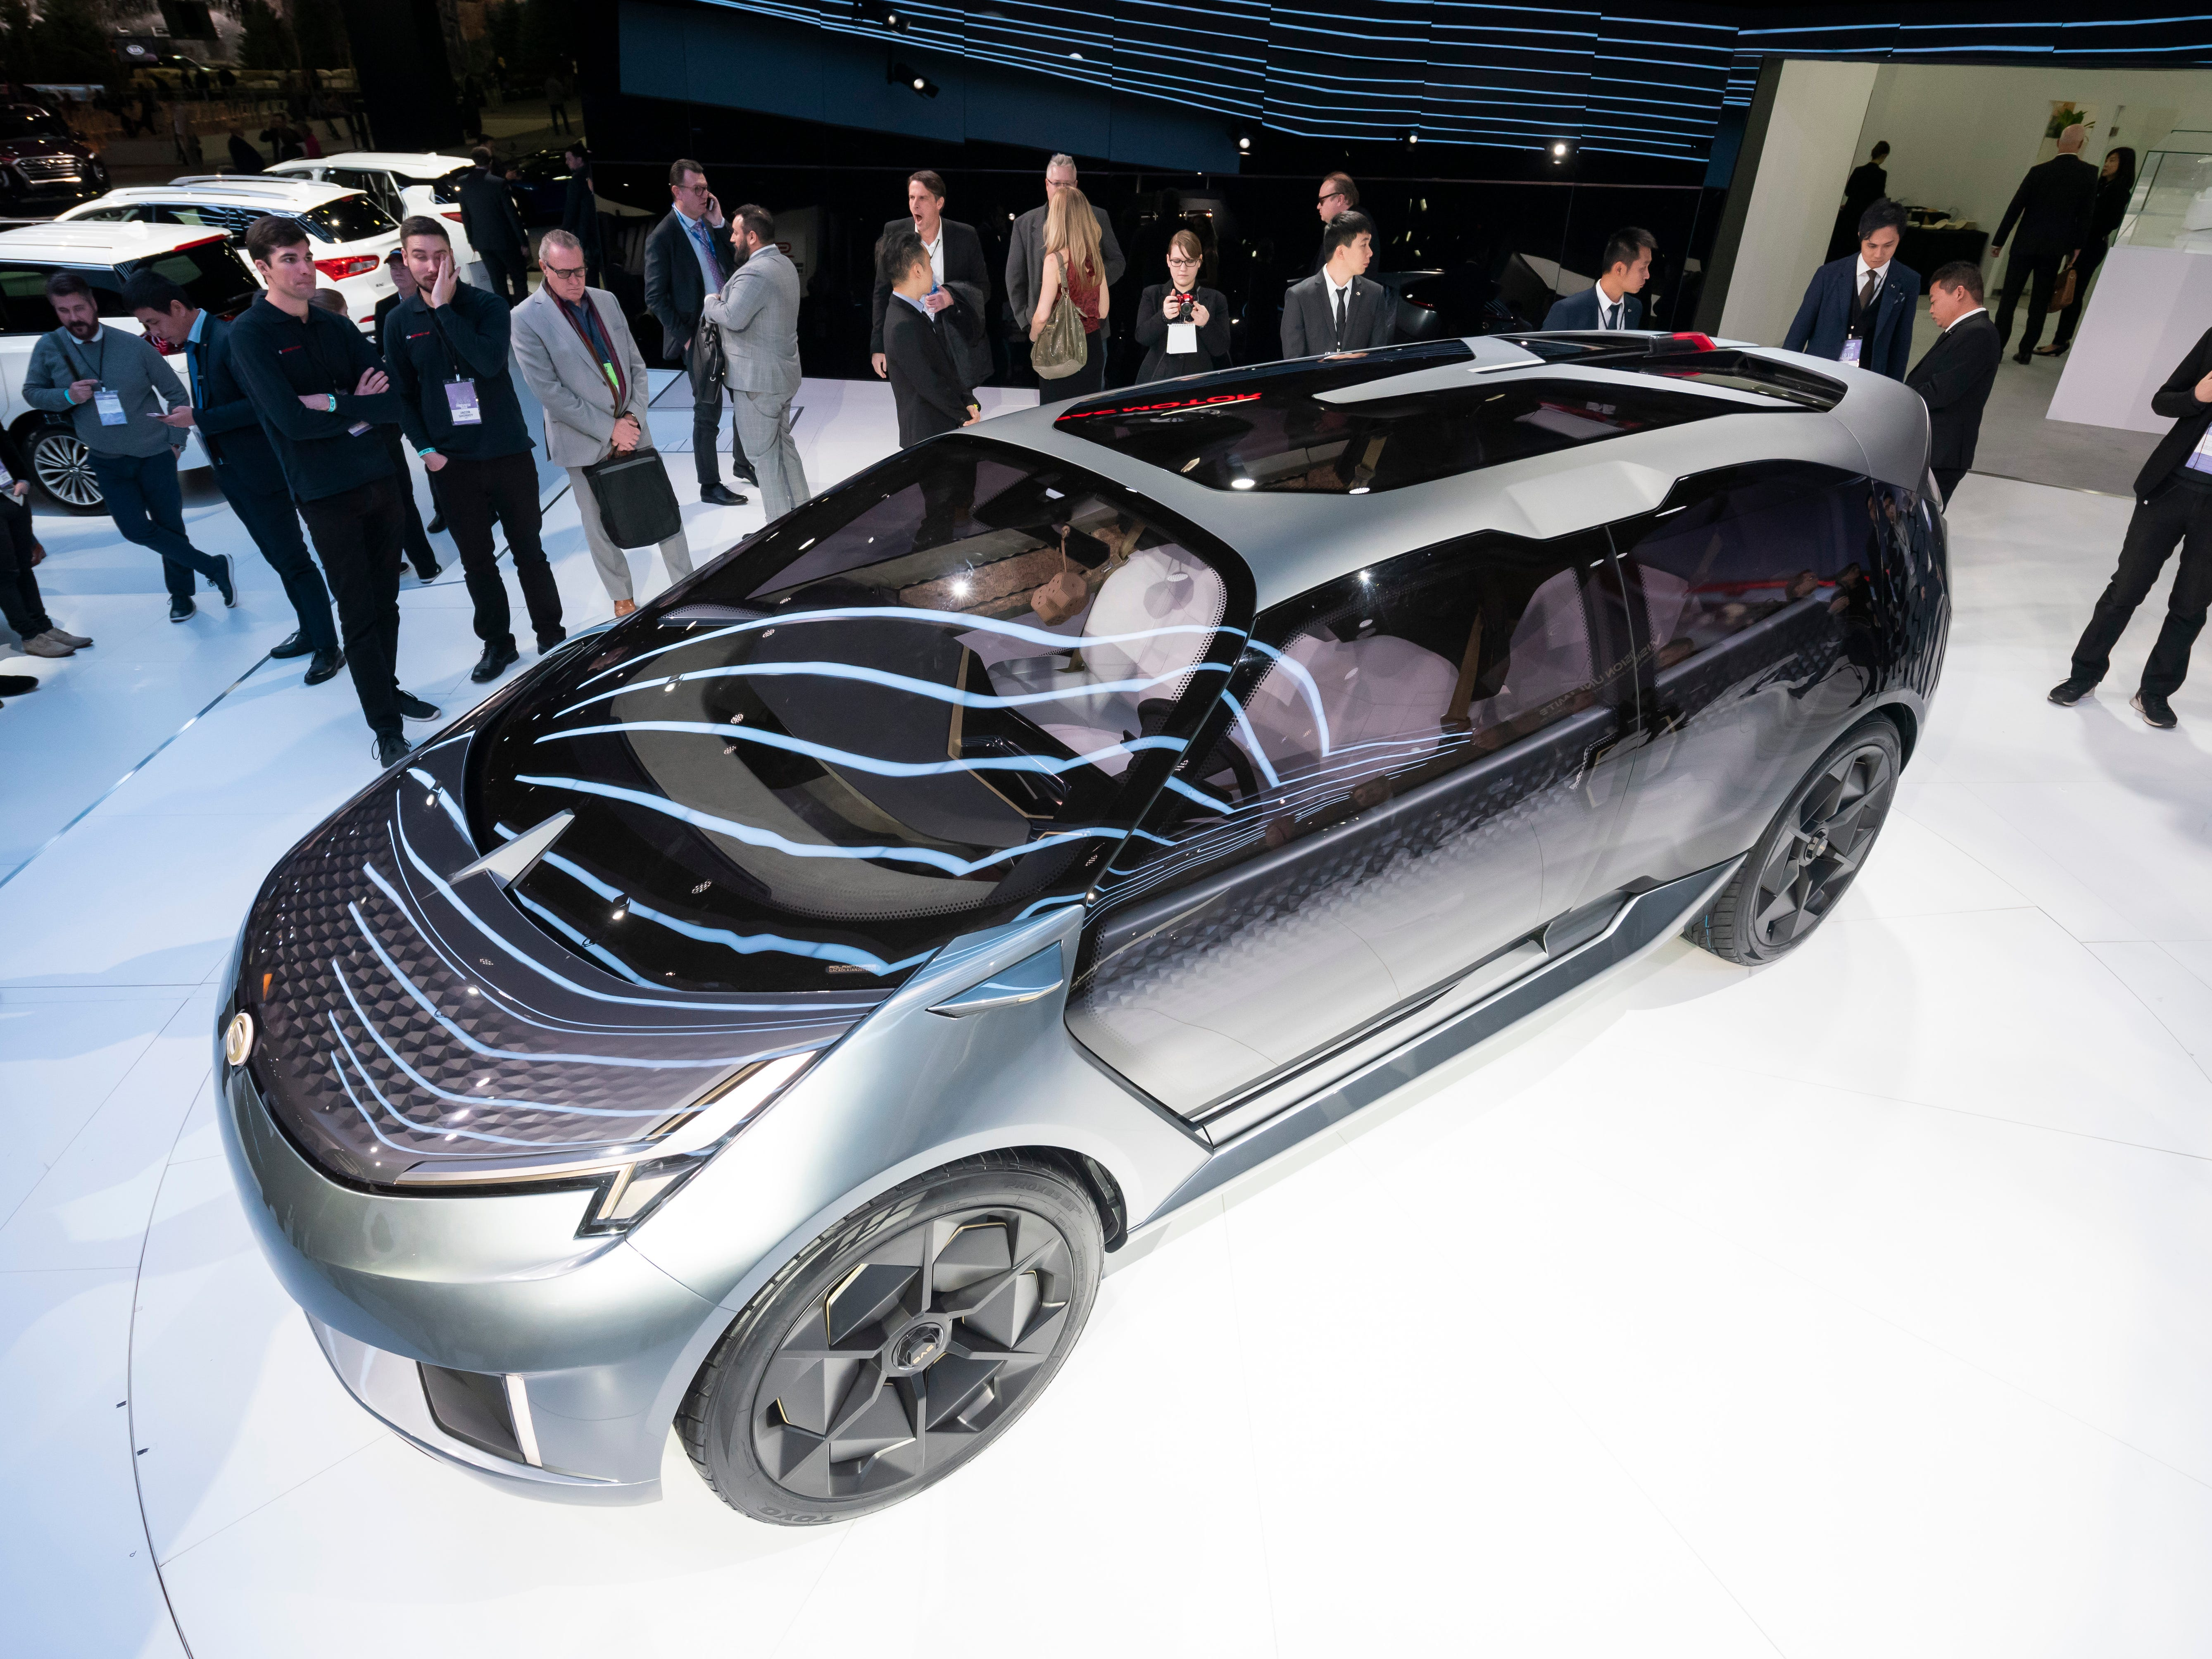 The Entranze electric concept vehicle from Chinese automaker GAC is revealed during the North American International Auto Show at Cobo Center in Detroit on Monday, Jan. 14, 2019.